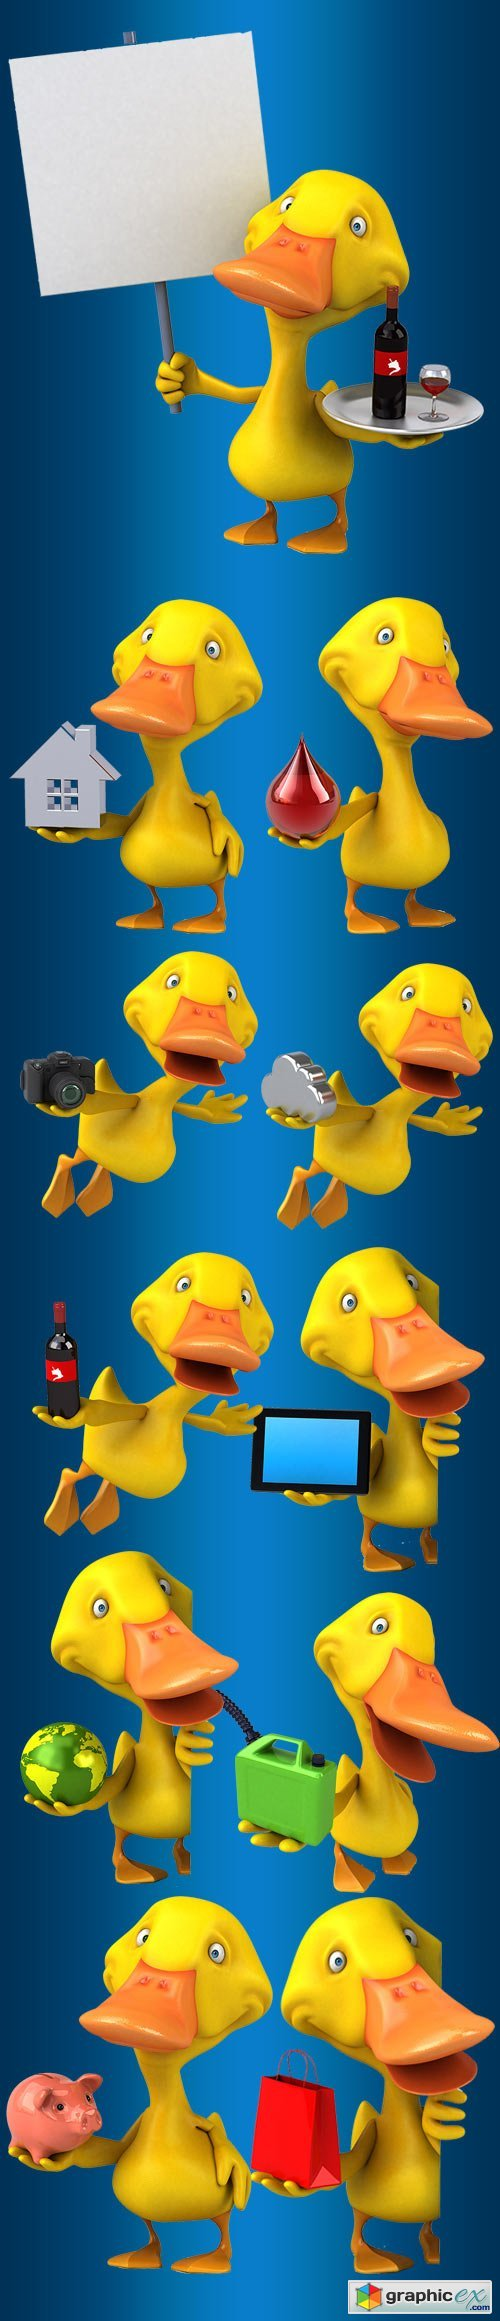 Gifts from duck - Children's clipart